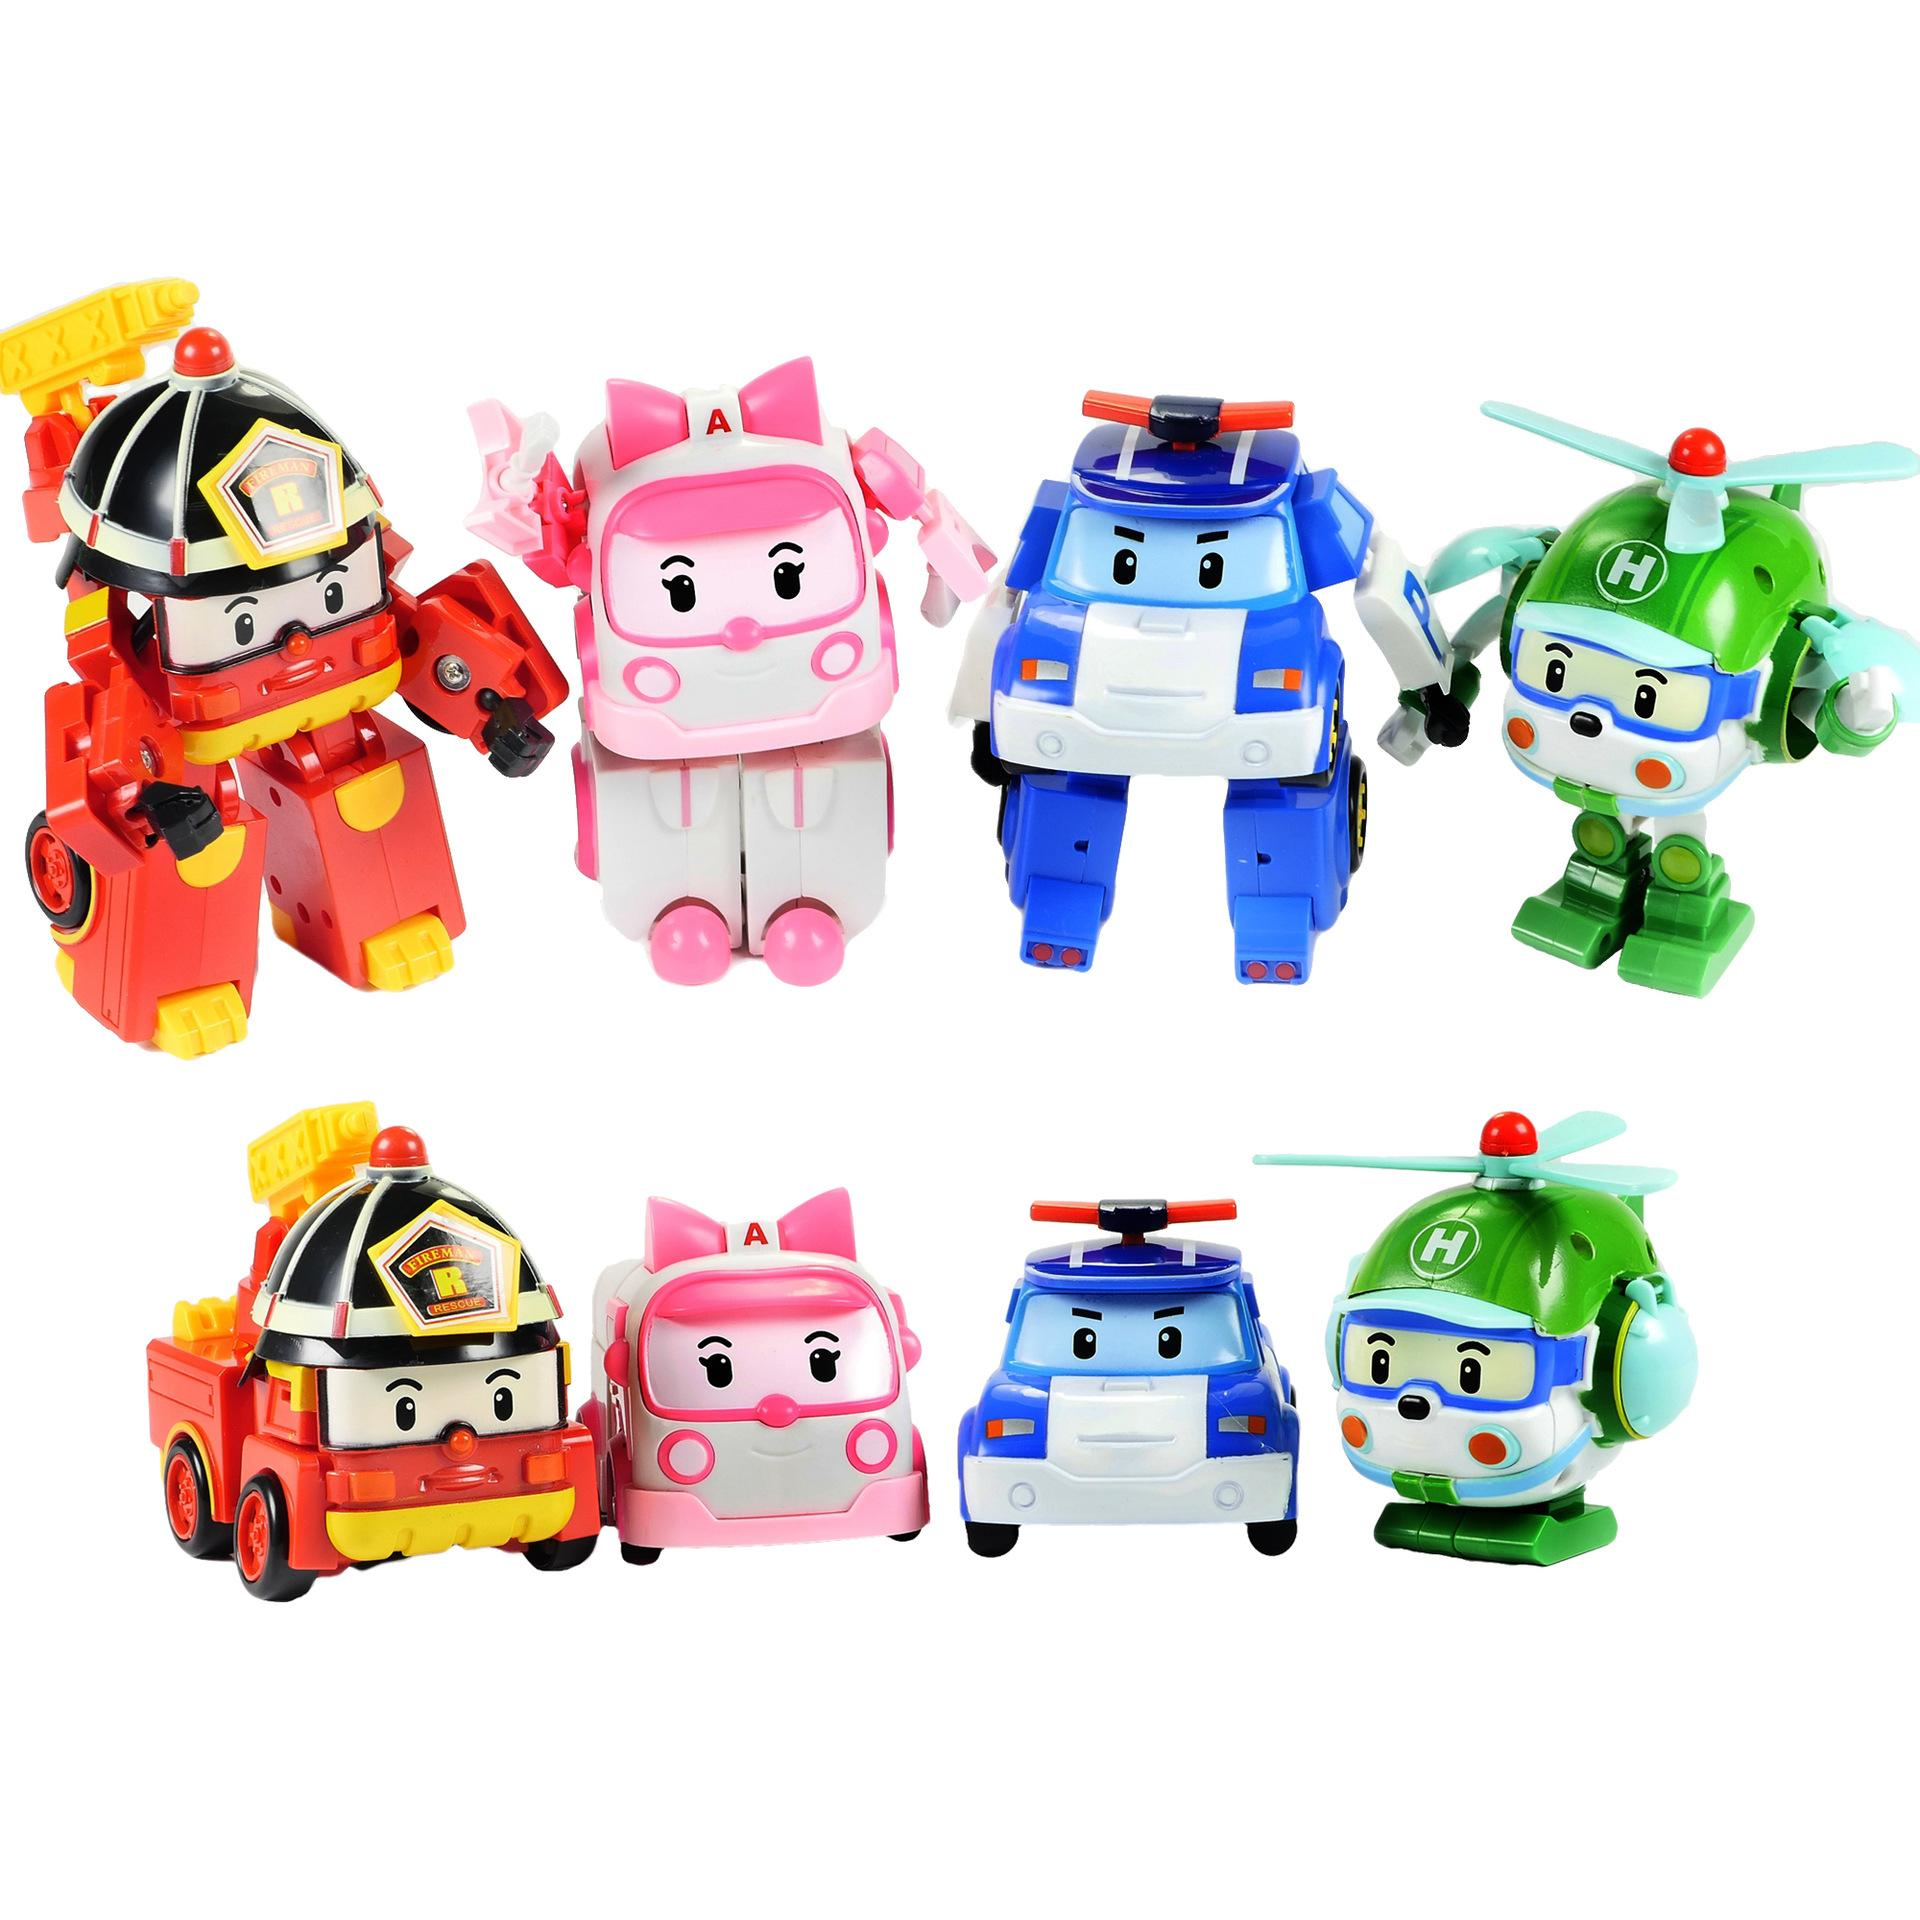 2017 police cars for kids robocar poli deformation car toys 4 styles police car fire truck